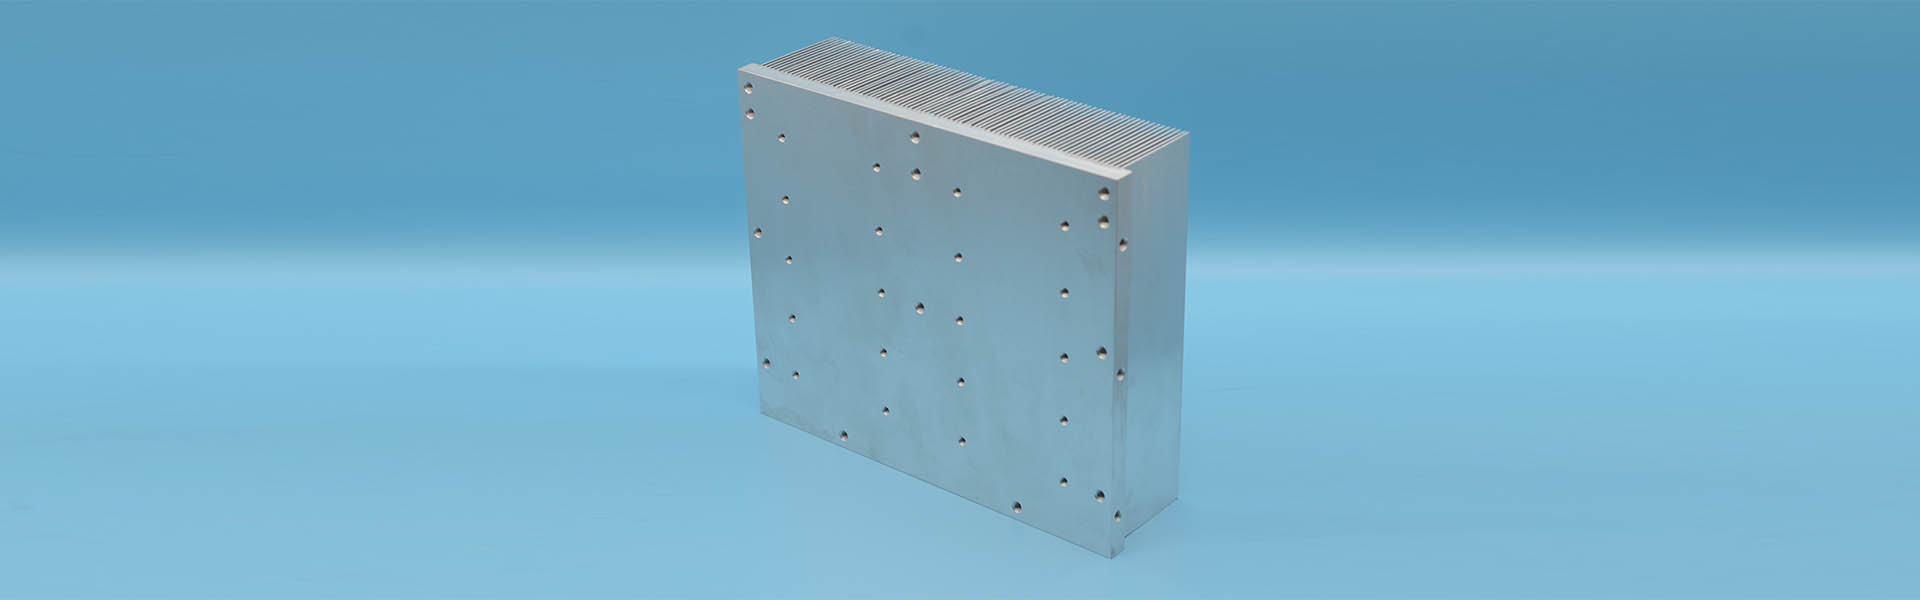 AirFab Cooling Plate by ITS vertical showcase